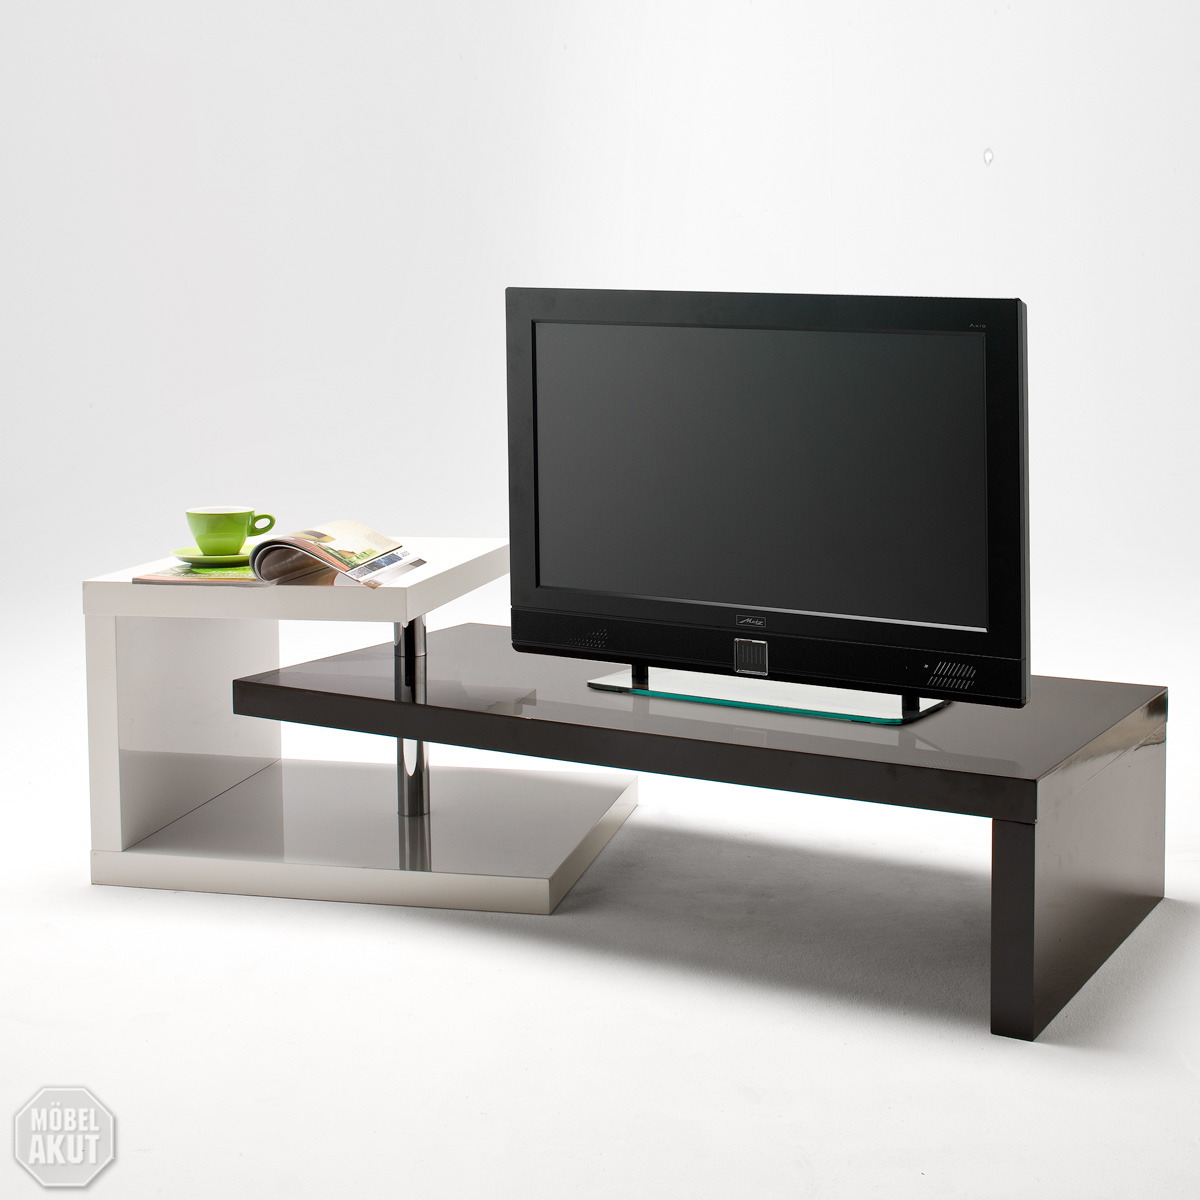 lowboard casale tv board media m bel in schwarz wei. Black Bedroom Furniture Sets. Home Design Ideas